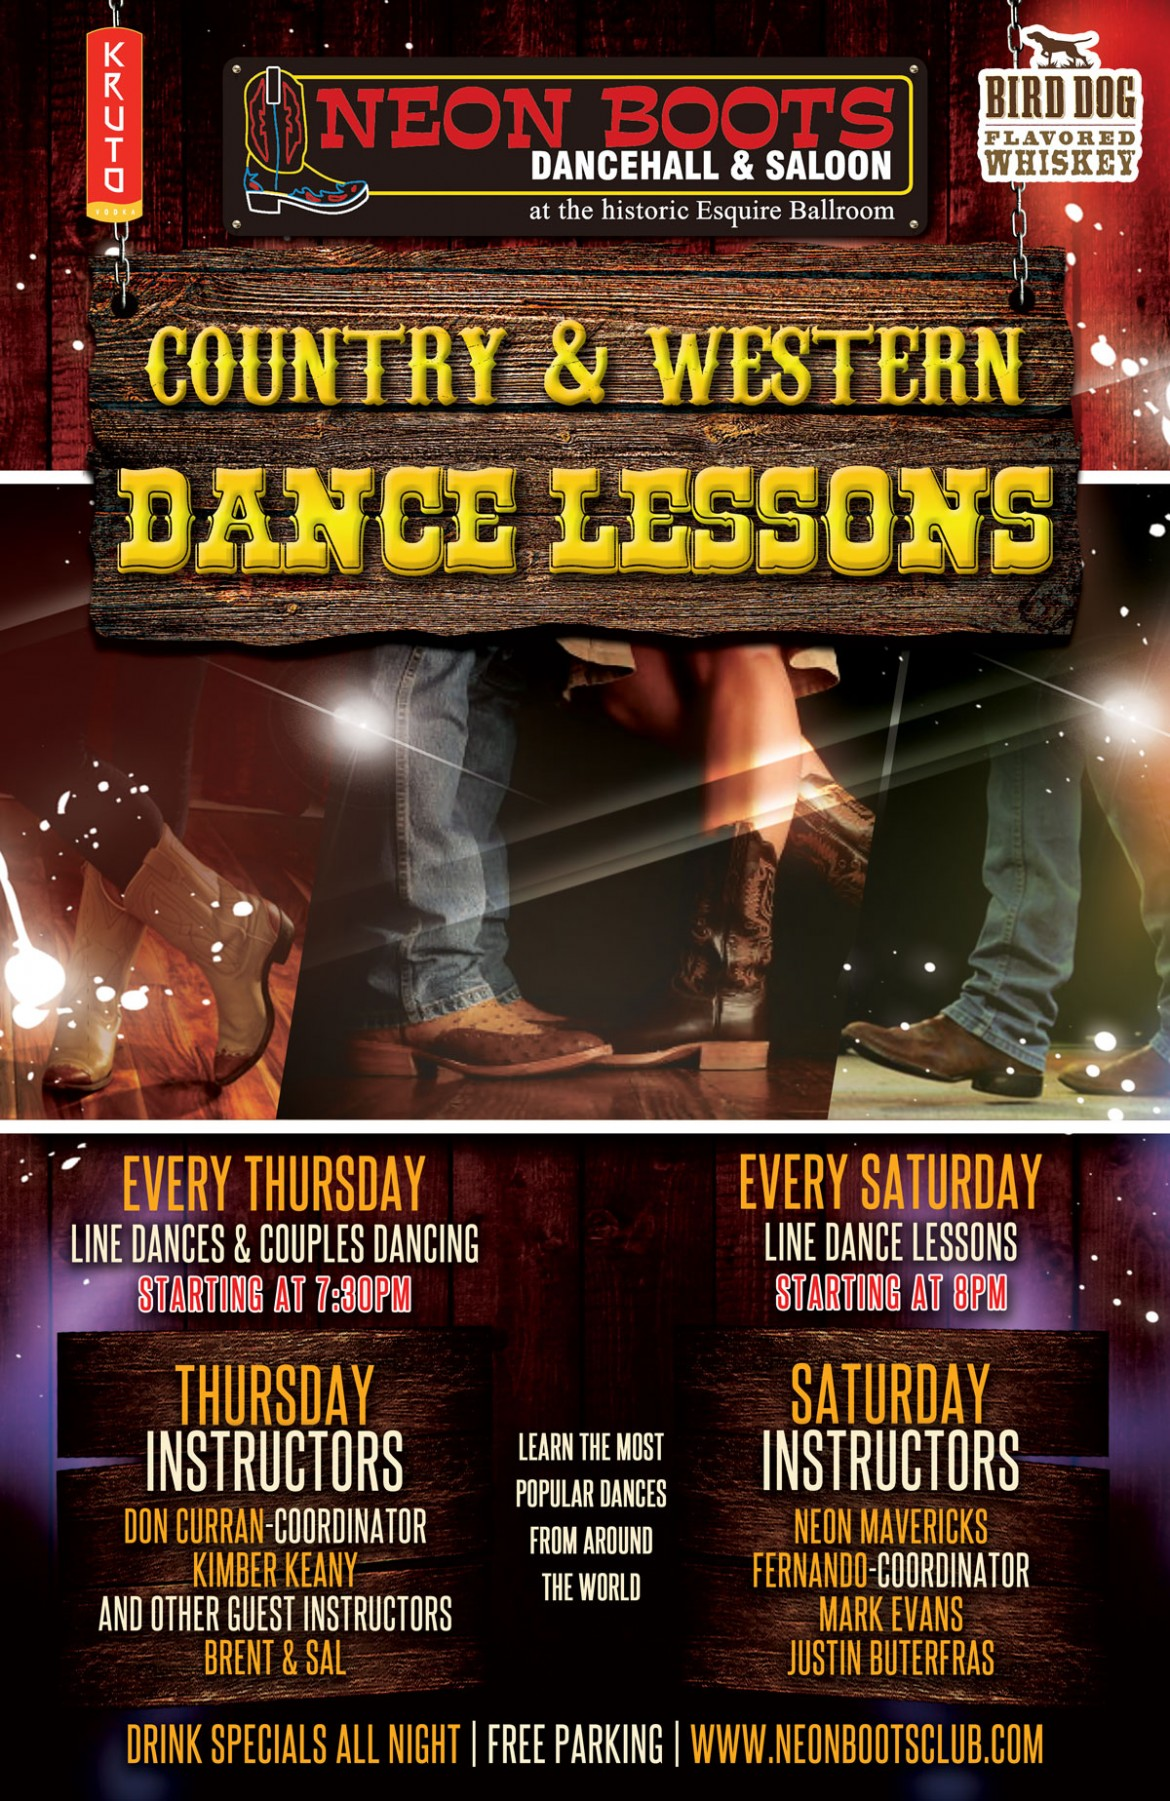 NEON BOOTS FRIDAY & SATURDAY DANCE LESSONS